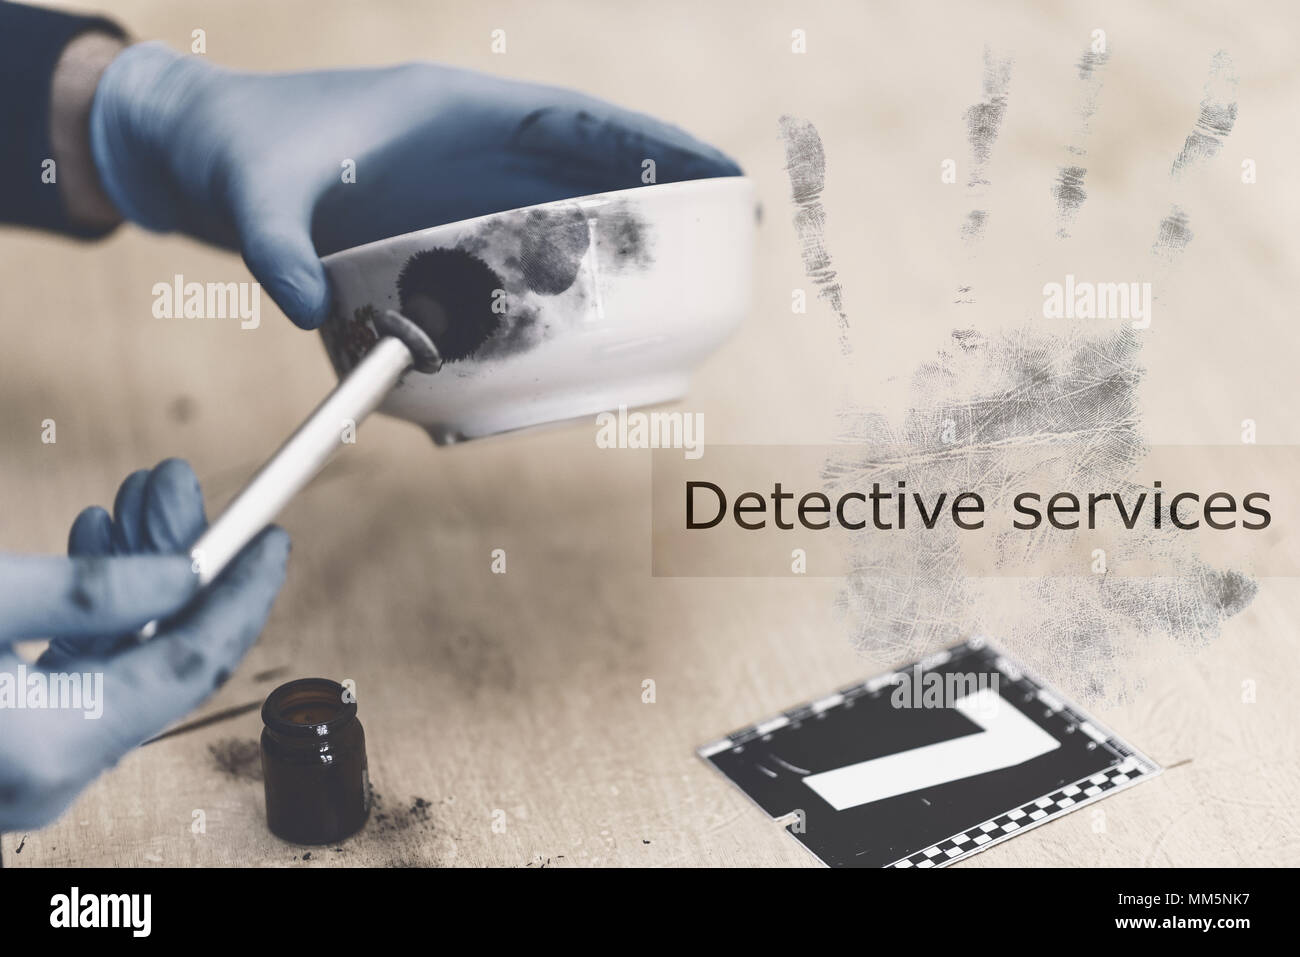 Detective services. Specialist conducting searches and takes samples of fingerprints at the crime scene, investigation - Stock Image